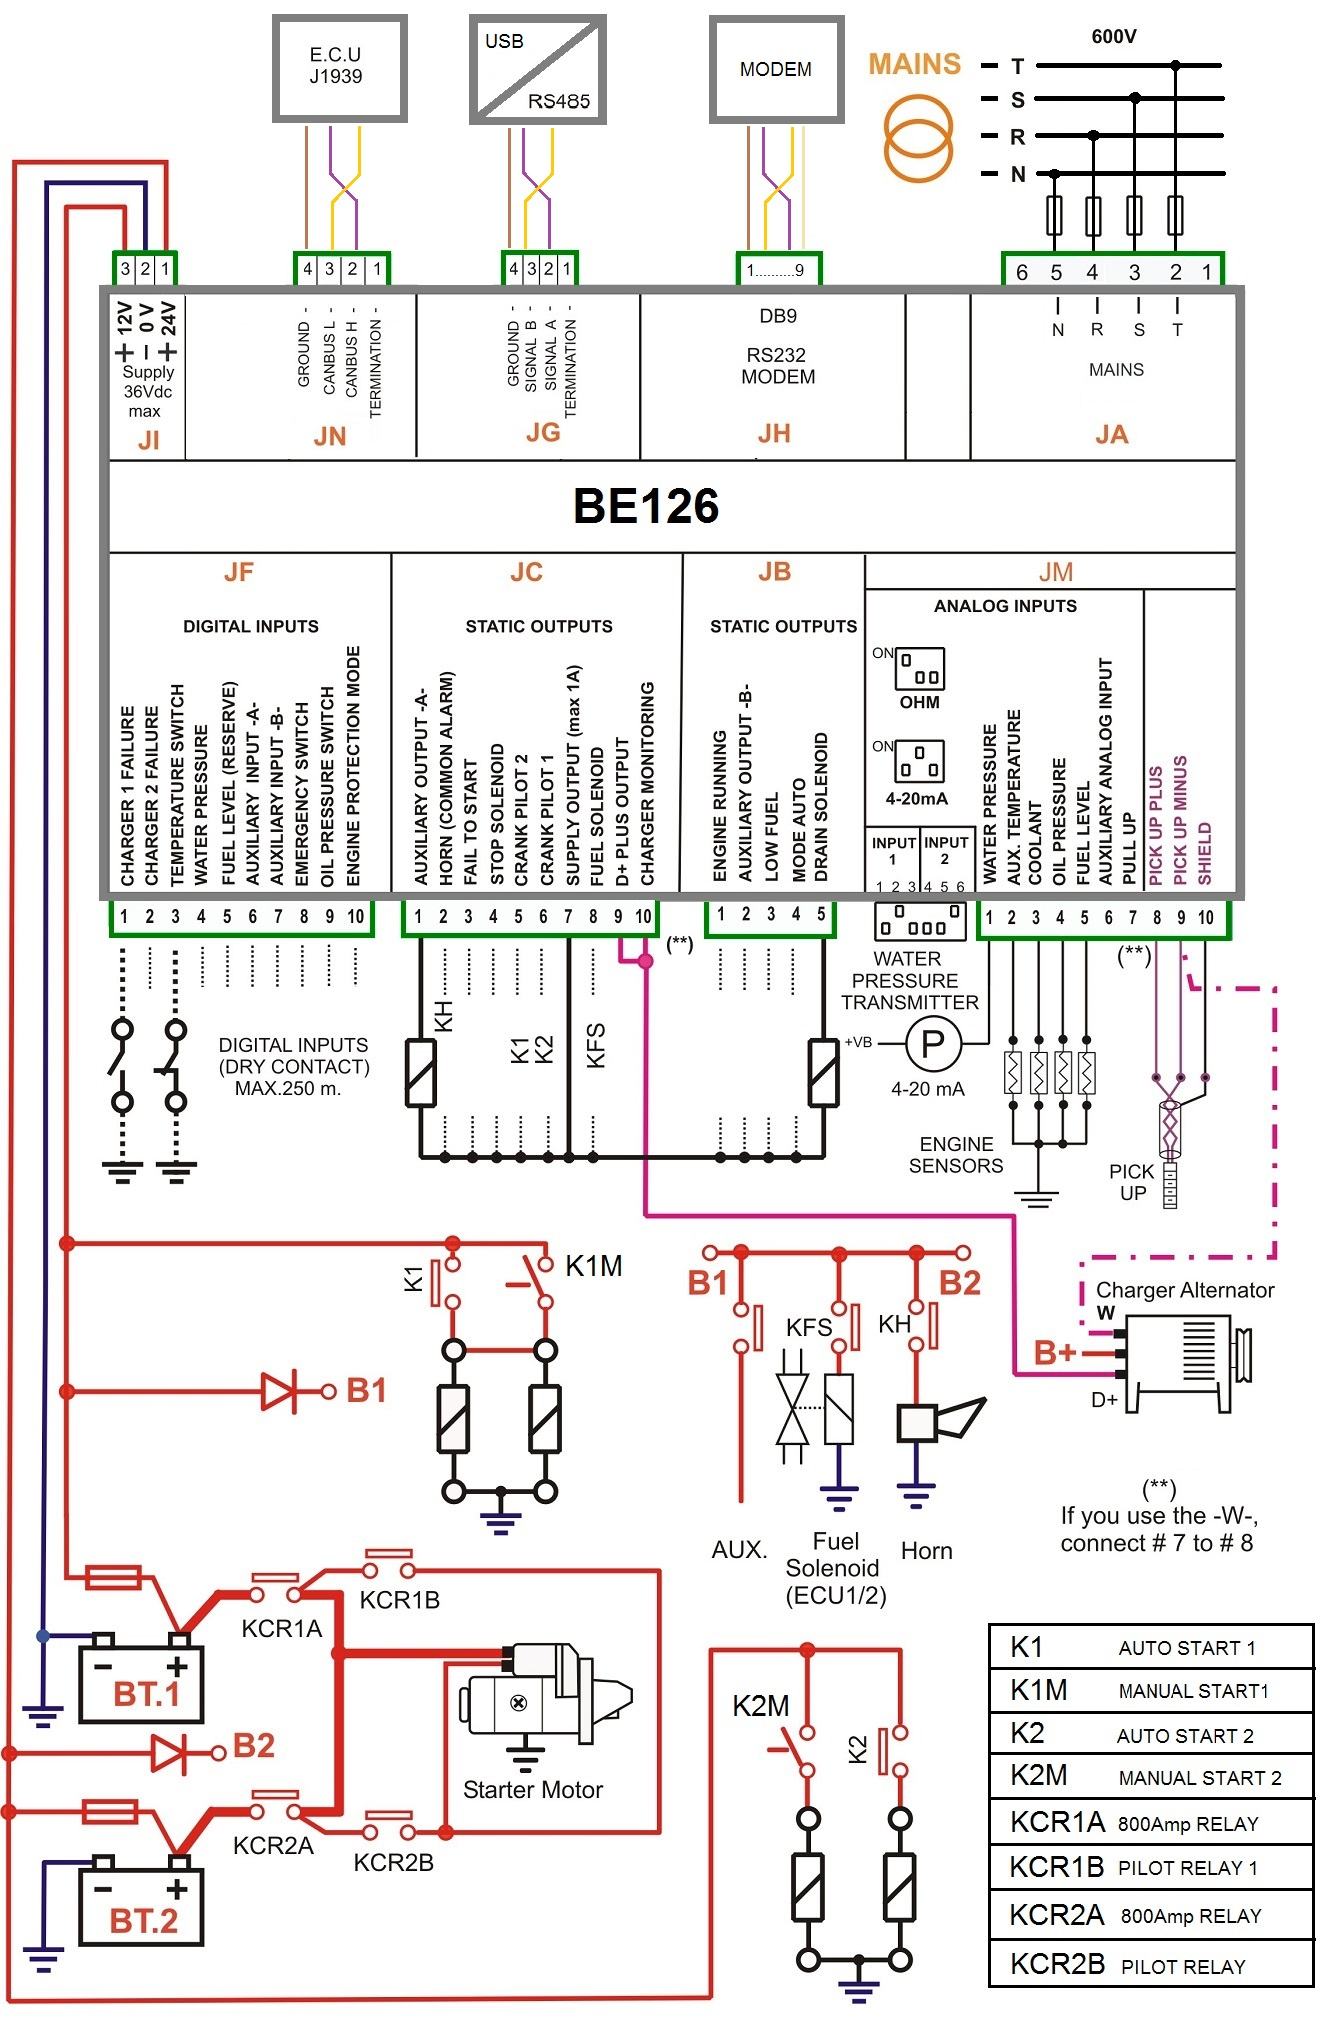 fire pump controller wiring diagram genset controller rh bernini design com lead lag pump control wiring diagram submersible pump control wiring diagram